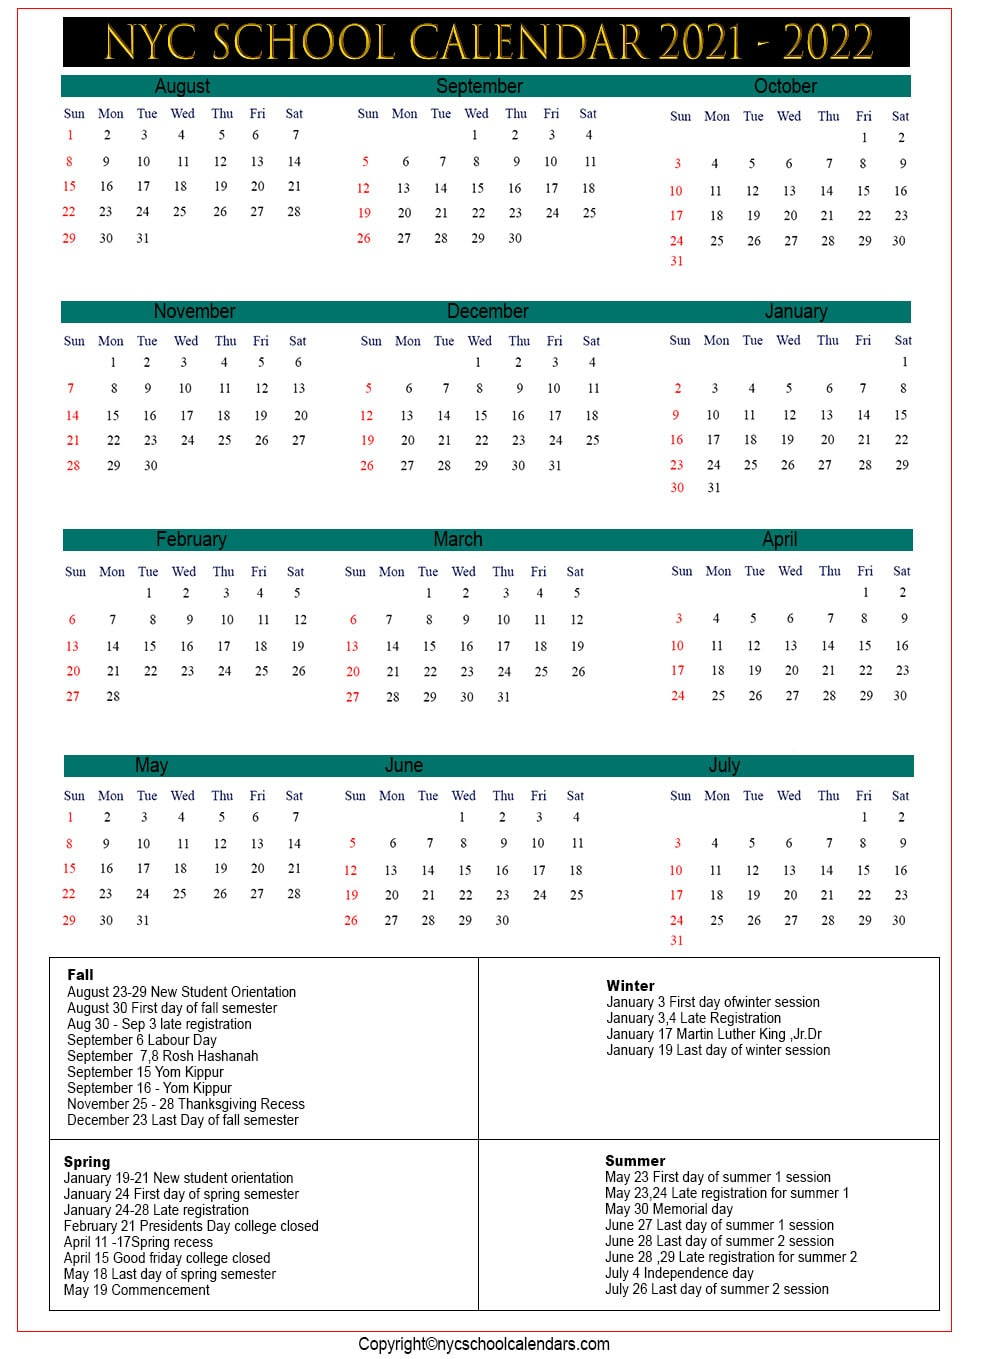 Assisted Living Activities Schedule   Printable Calendar Intended For Board Of Education Calendar 2021 2020 Bibb County